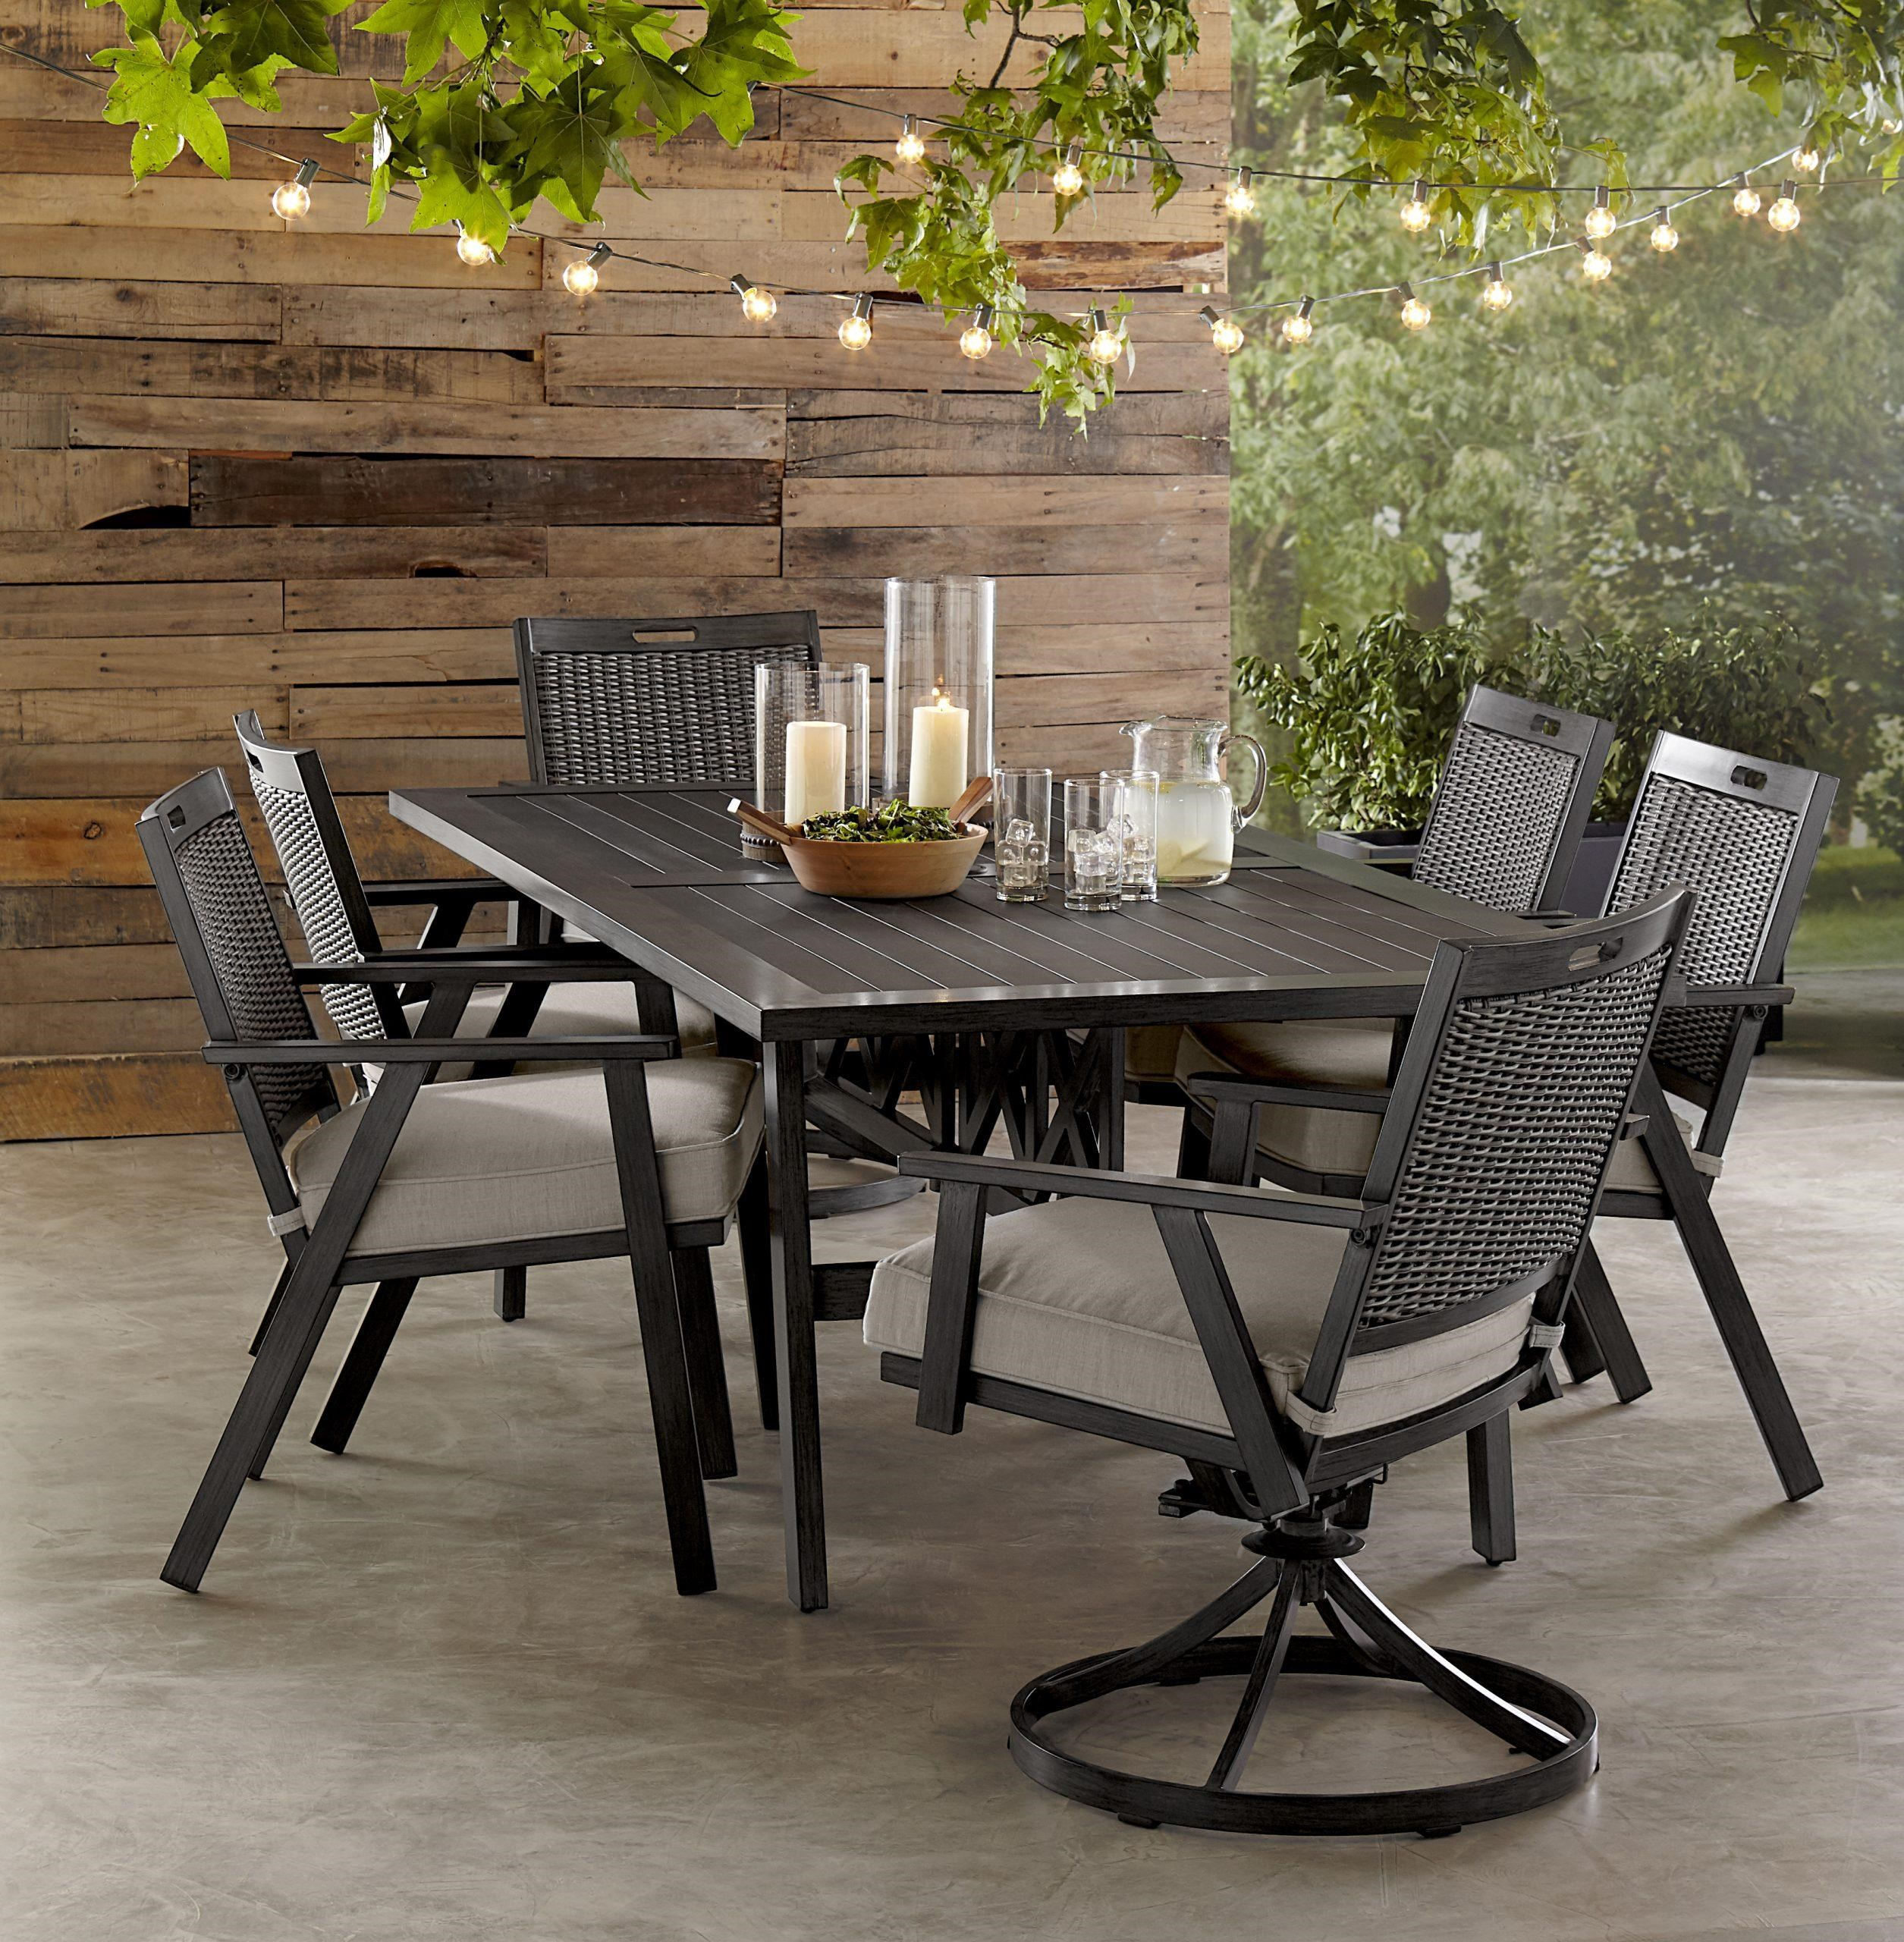 Adison Dining Table, 4 Chairs, 2 Swivel Chair by Apricity Outdoor at Johnny Janosik